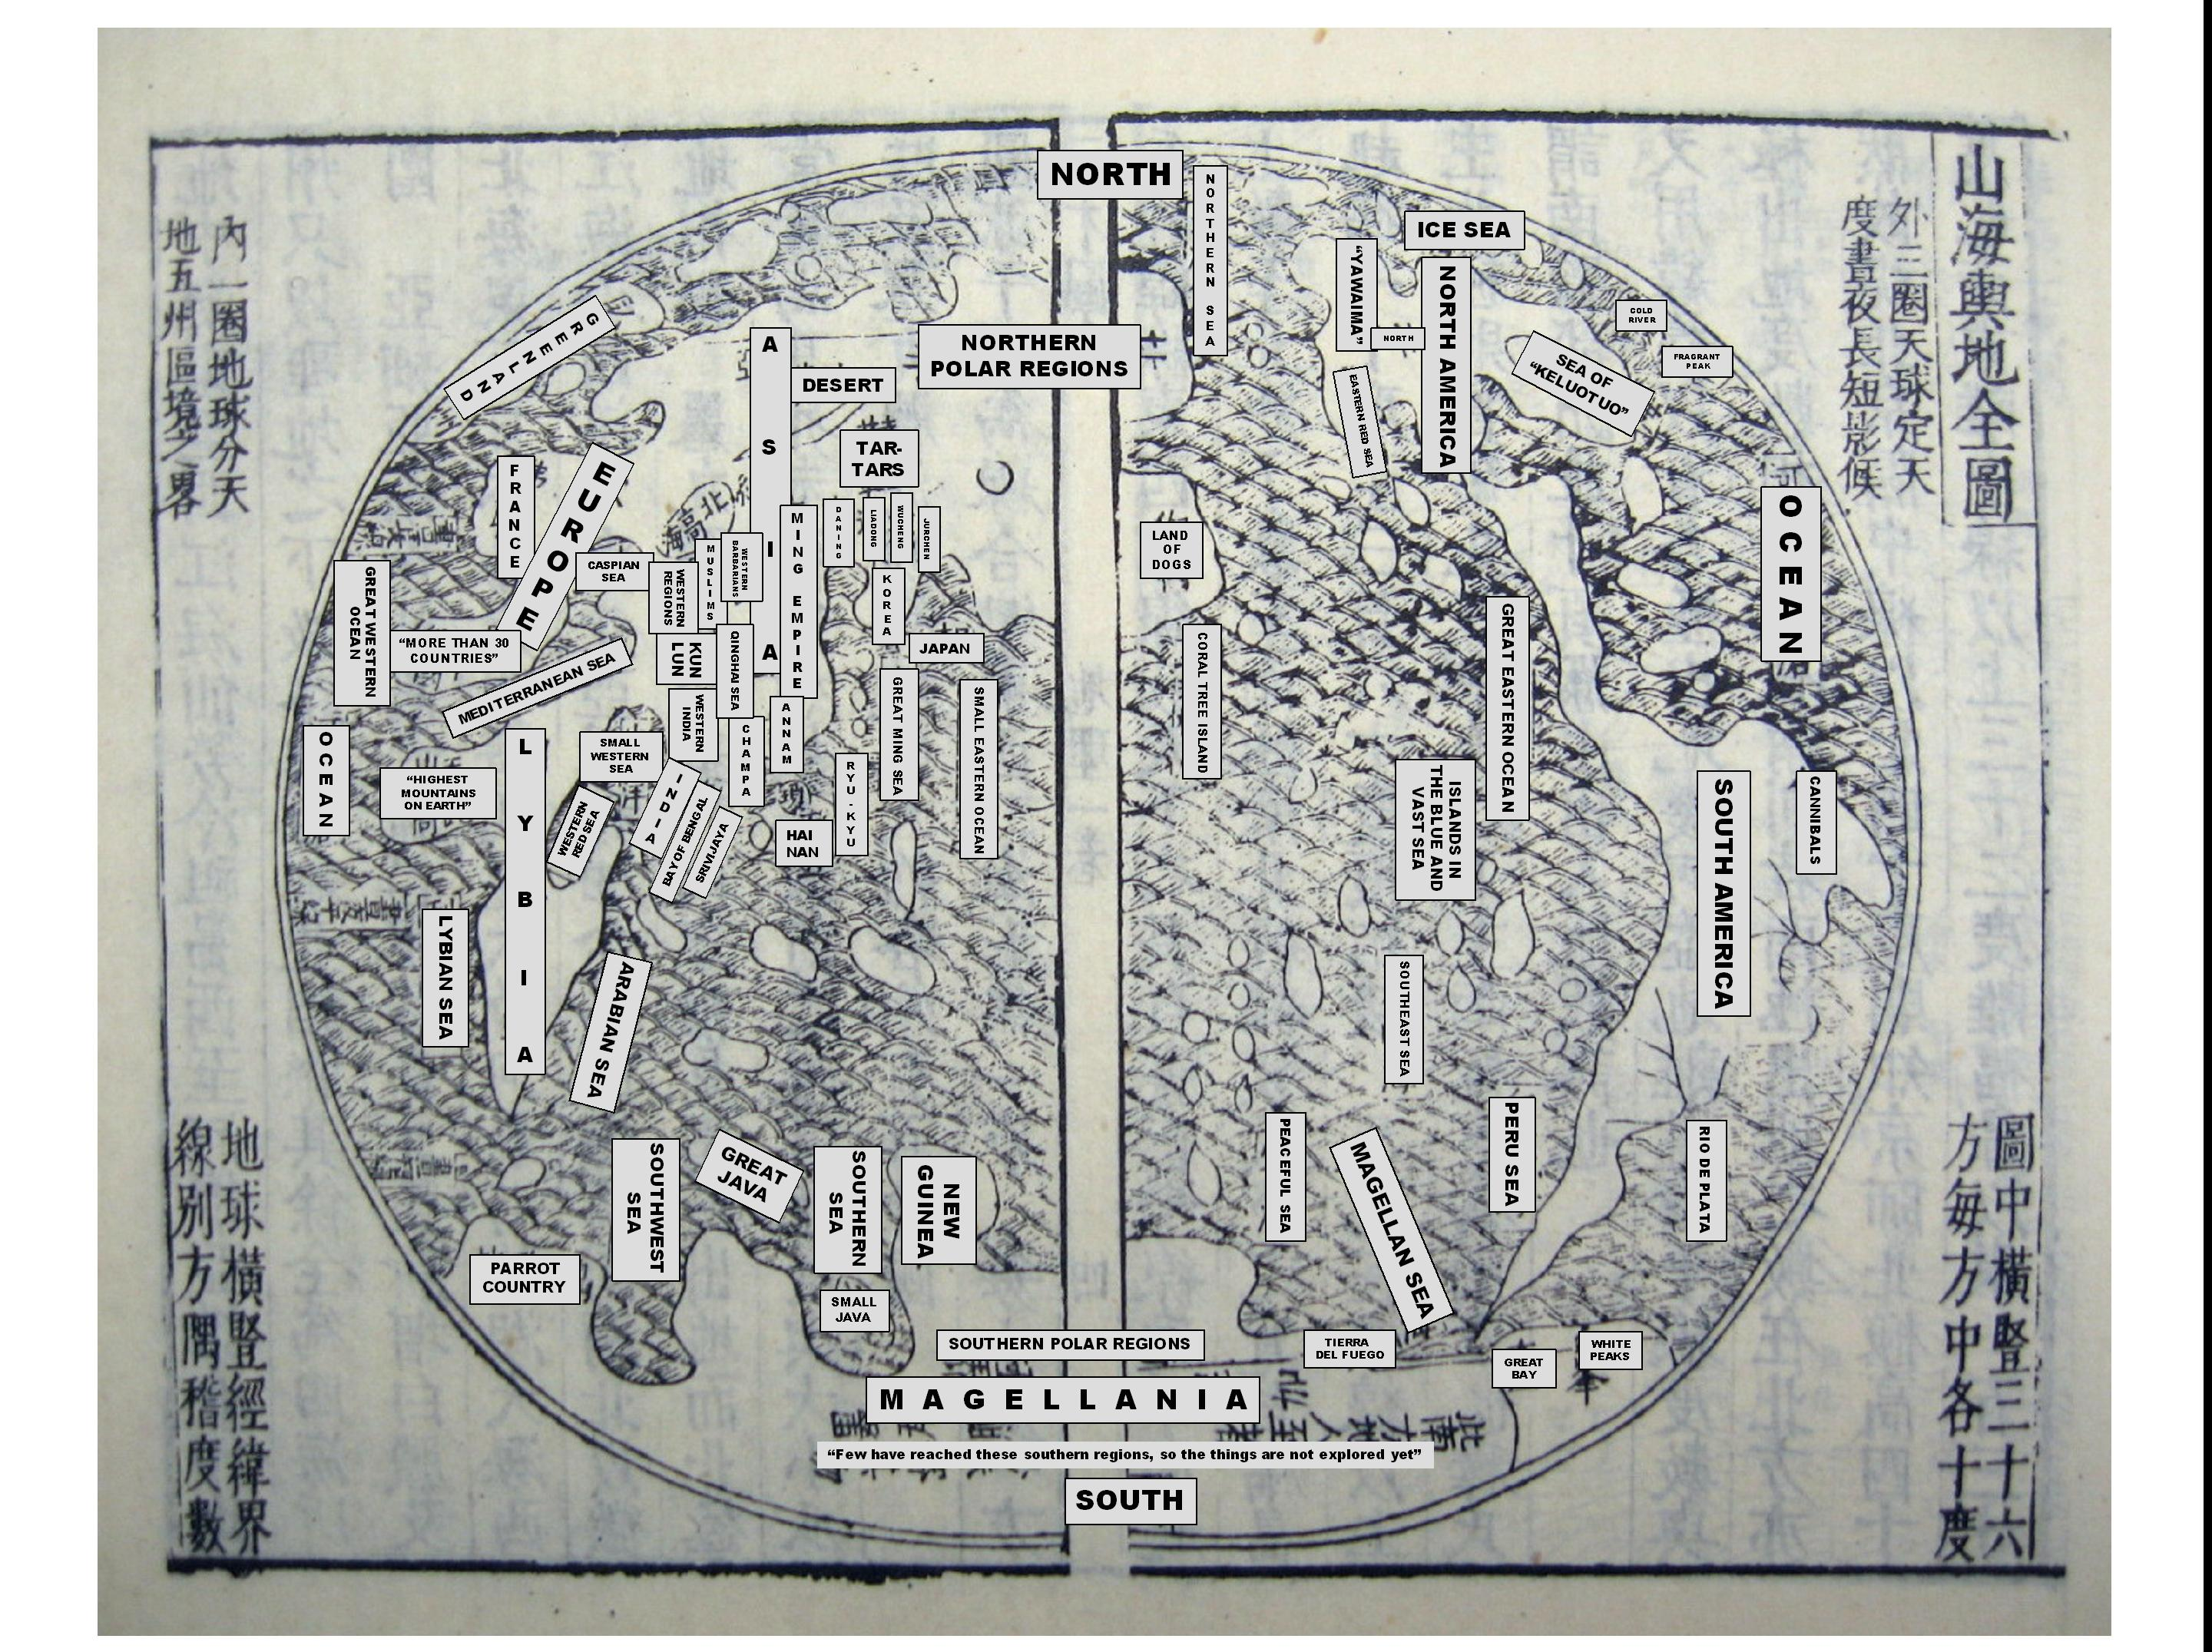 Res Obscura: Early Chinese World Maps on african asian map, dutch colonies map, asia minor map, french colonies map, vintage asian map, medieval asian map, asian minor on a map, ancient asia minor countries, ancient greece, modern asian map, asia physical geography map, india asian map, ancient persia geography,